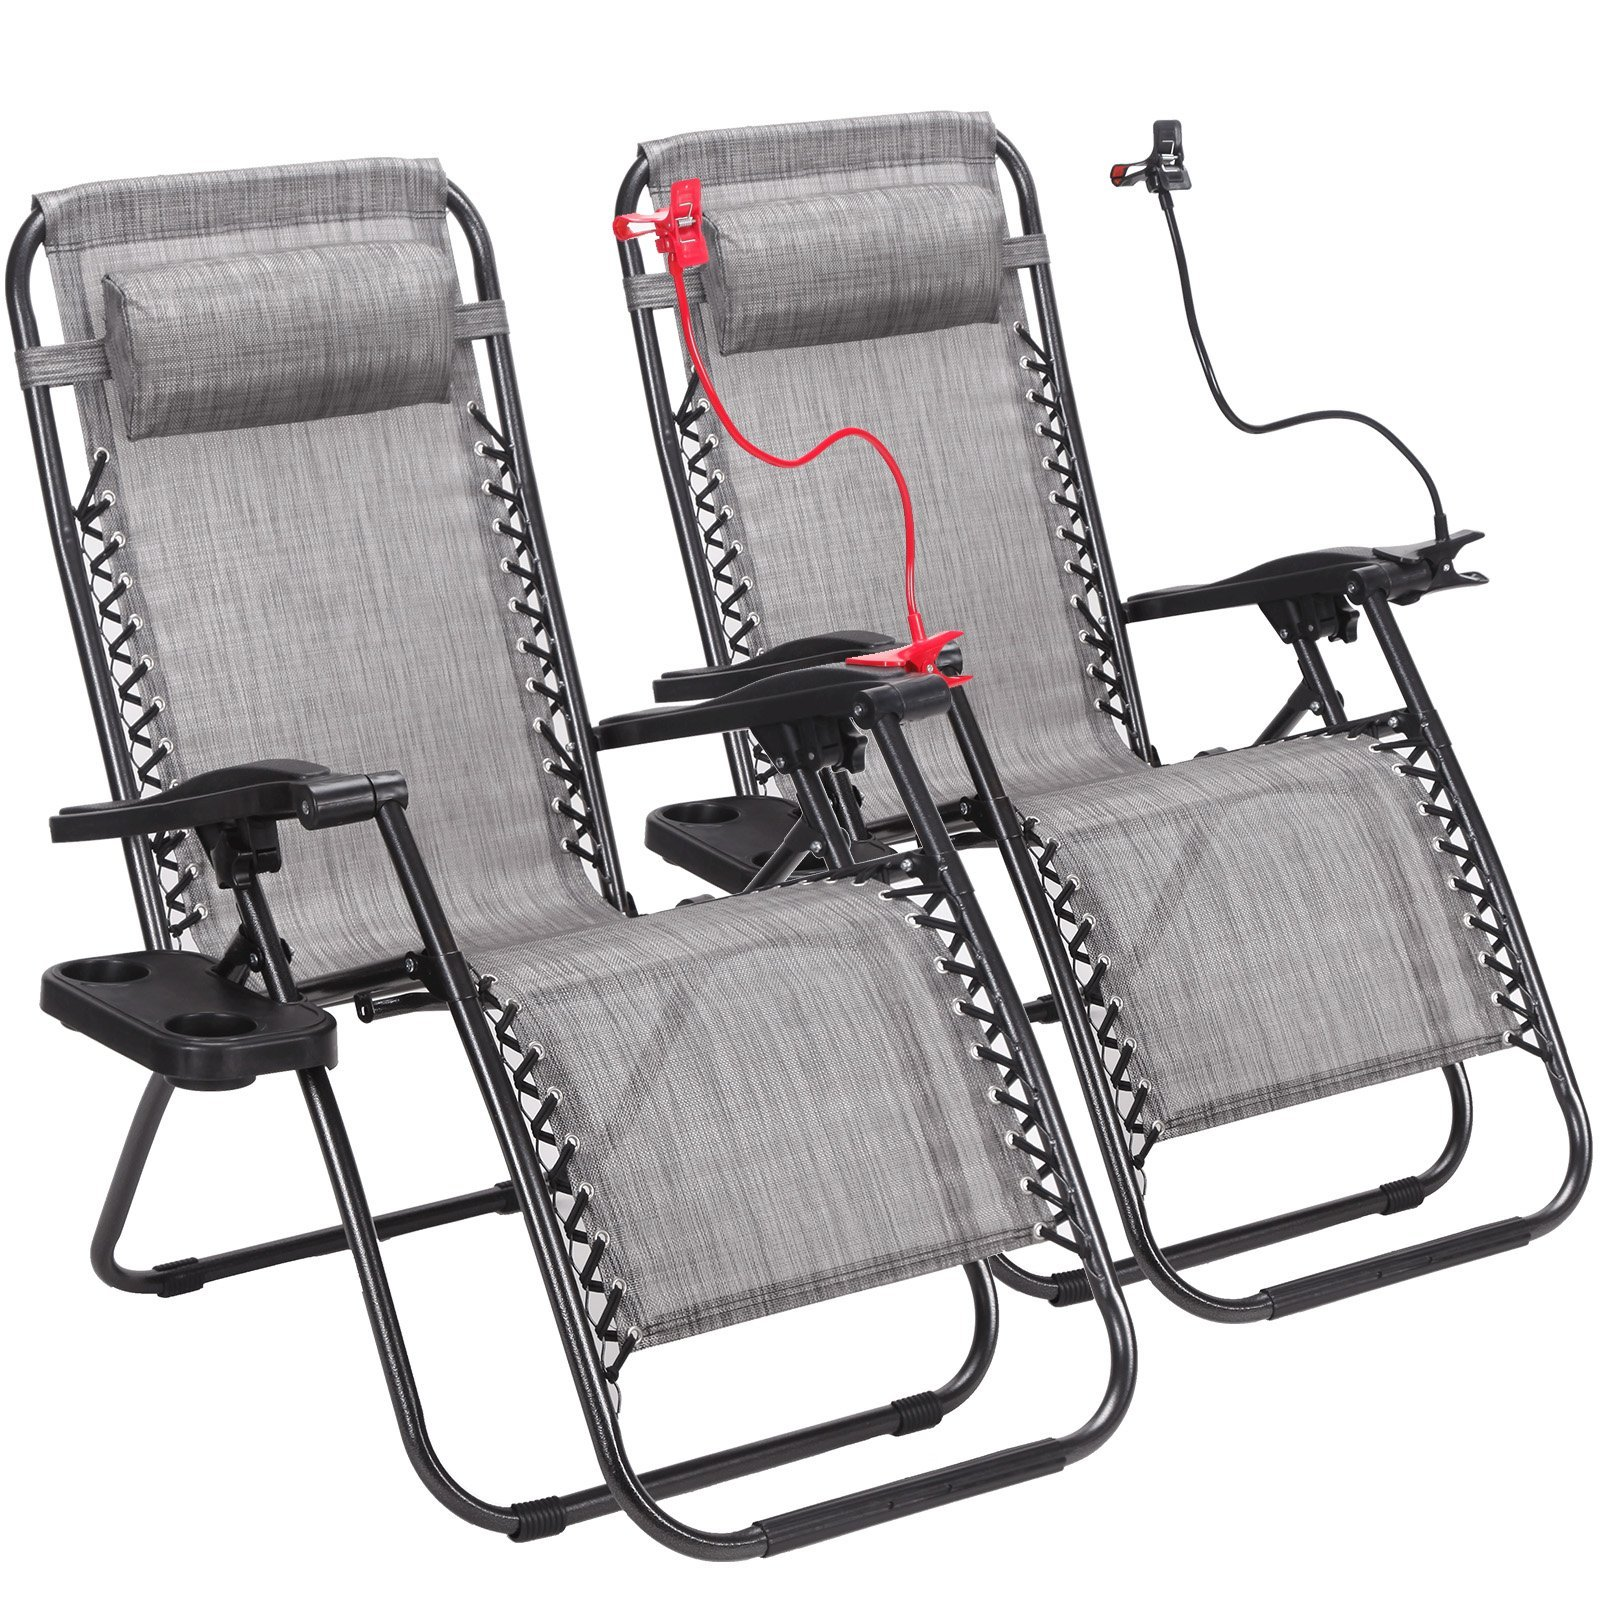 Idealchoiceproduct 2-Pack Zero Gravity Outdoor Lounge Chairs Patio Adjustable Folding Reclining Chairs With Free Cup/Drink Utility Tray & Cell Phone Holder - Grey Color, 2pcs